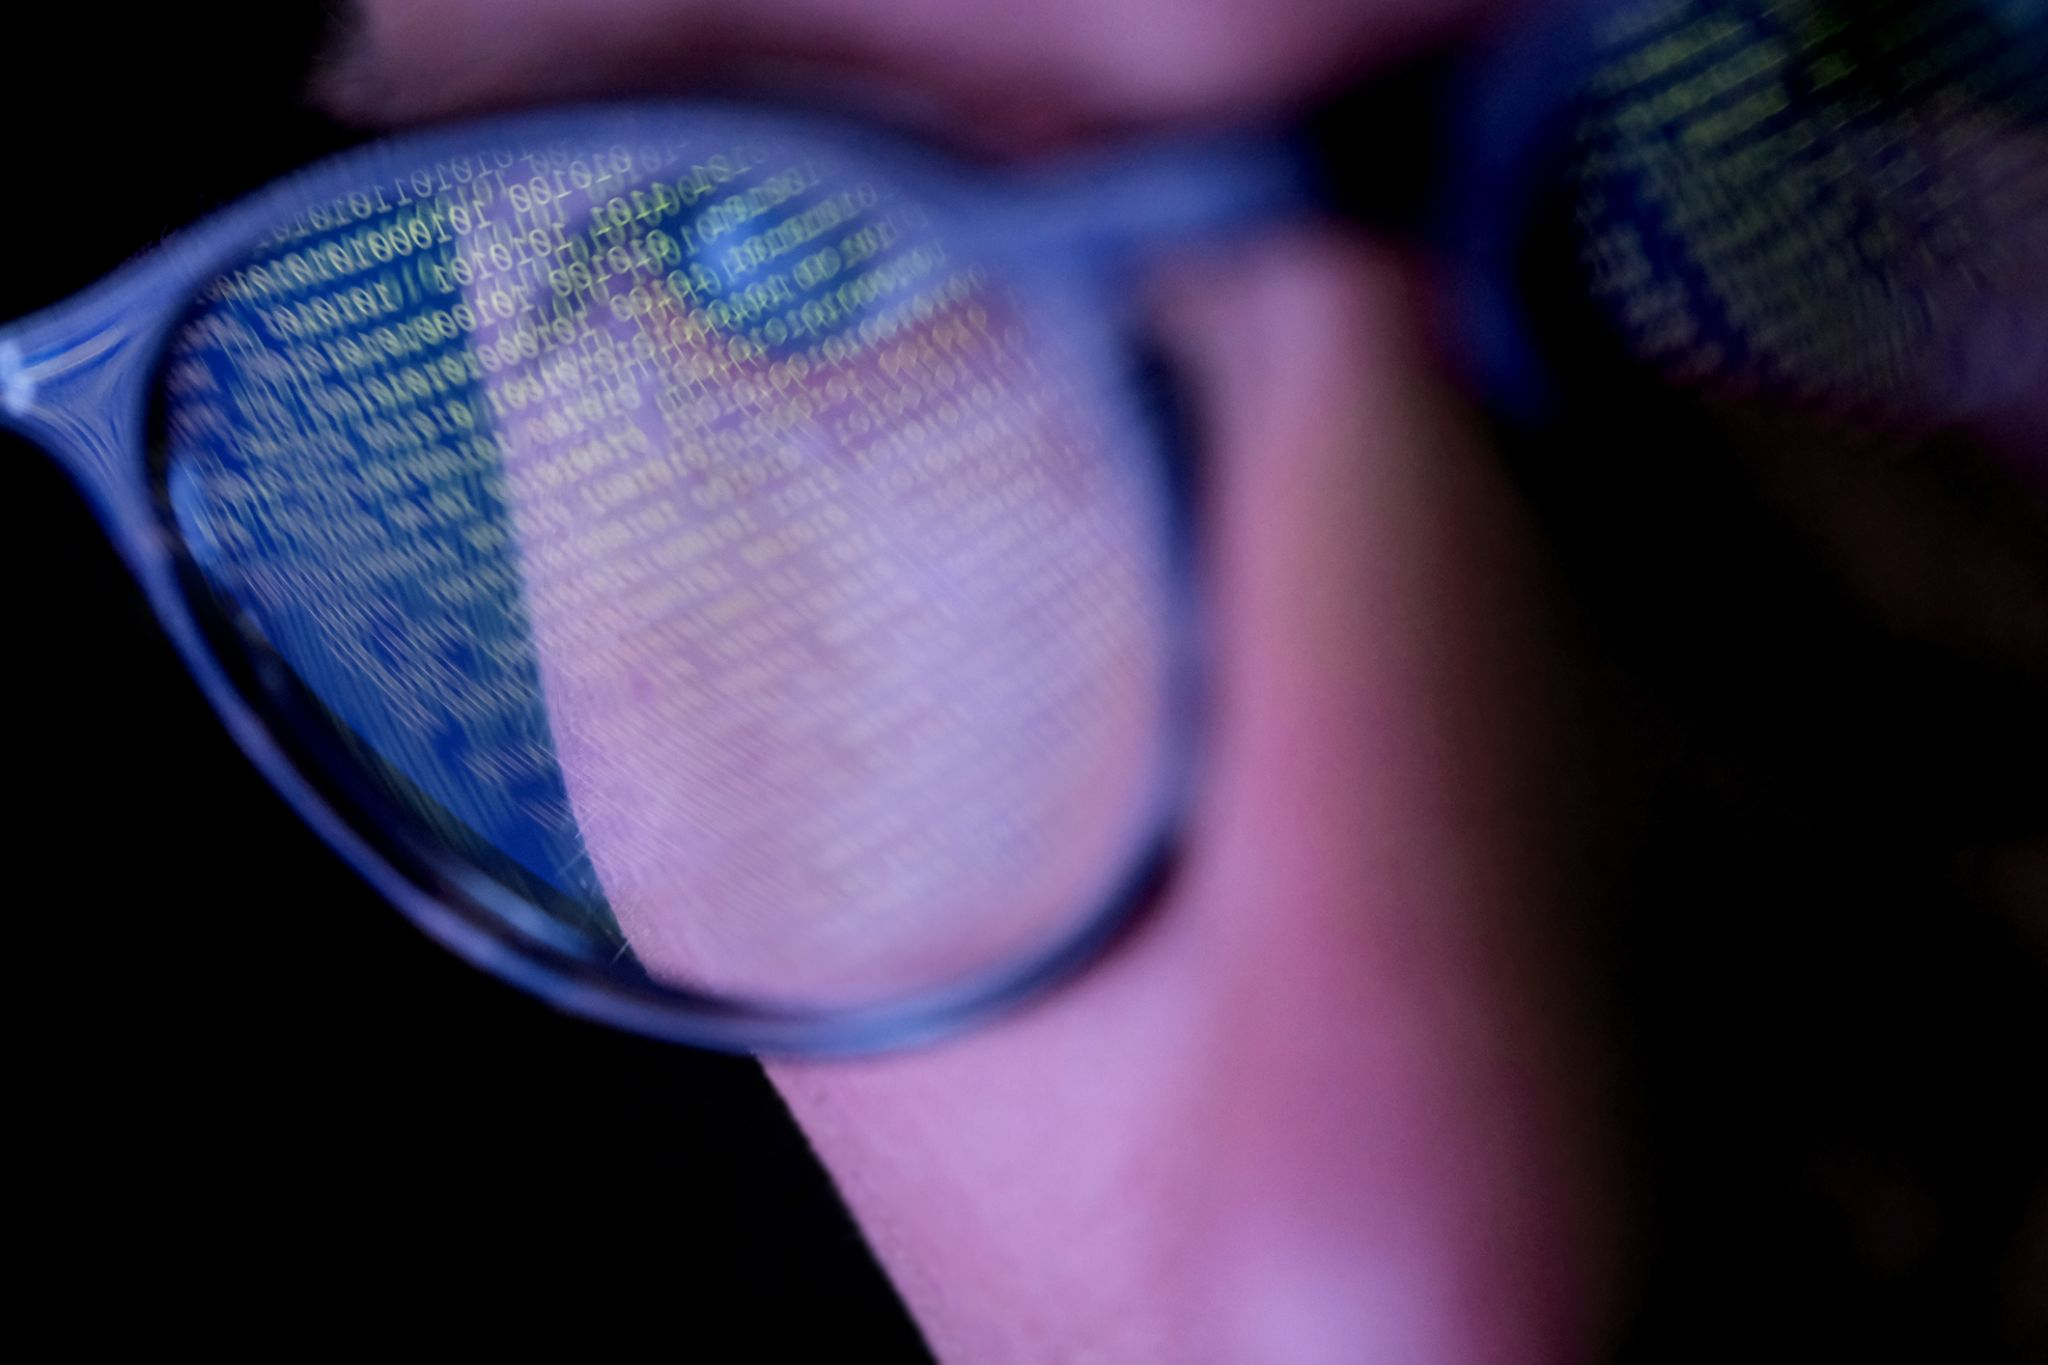 Cyber attacks against Illinois targets are on the rise